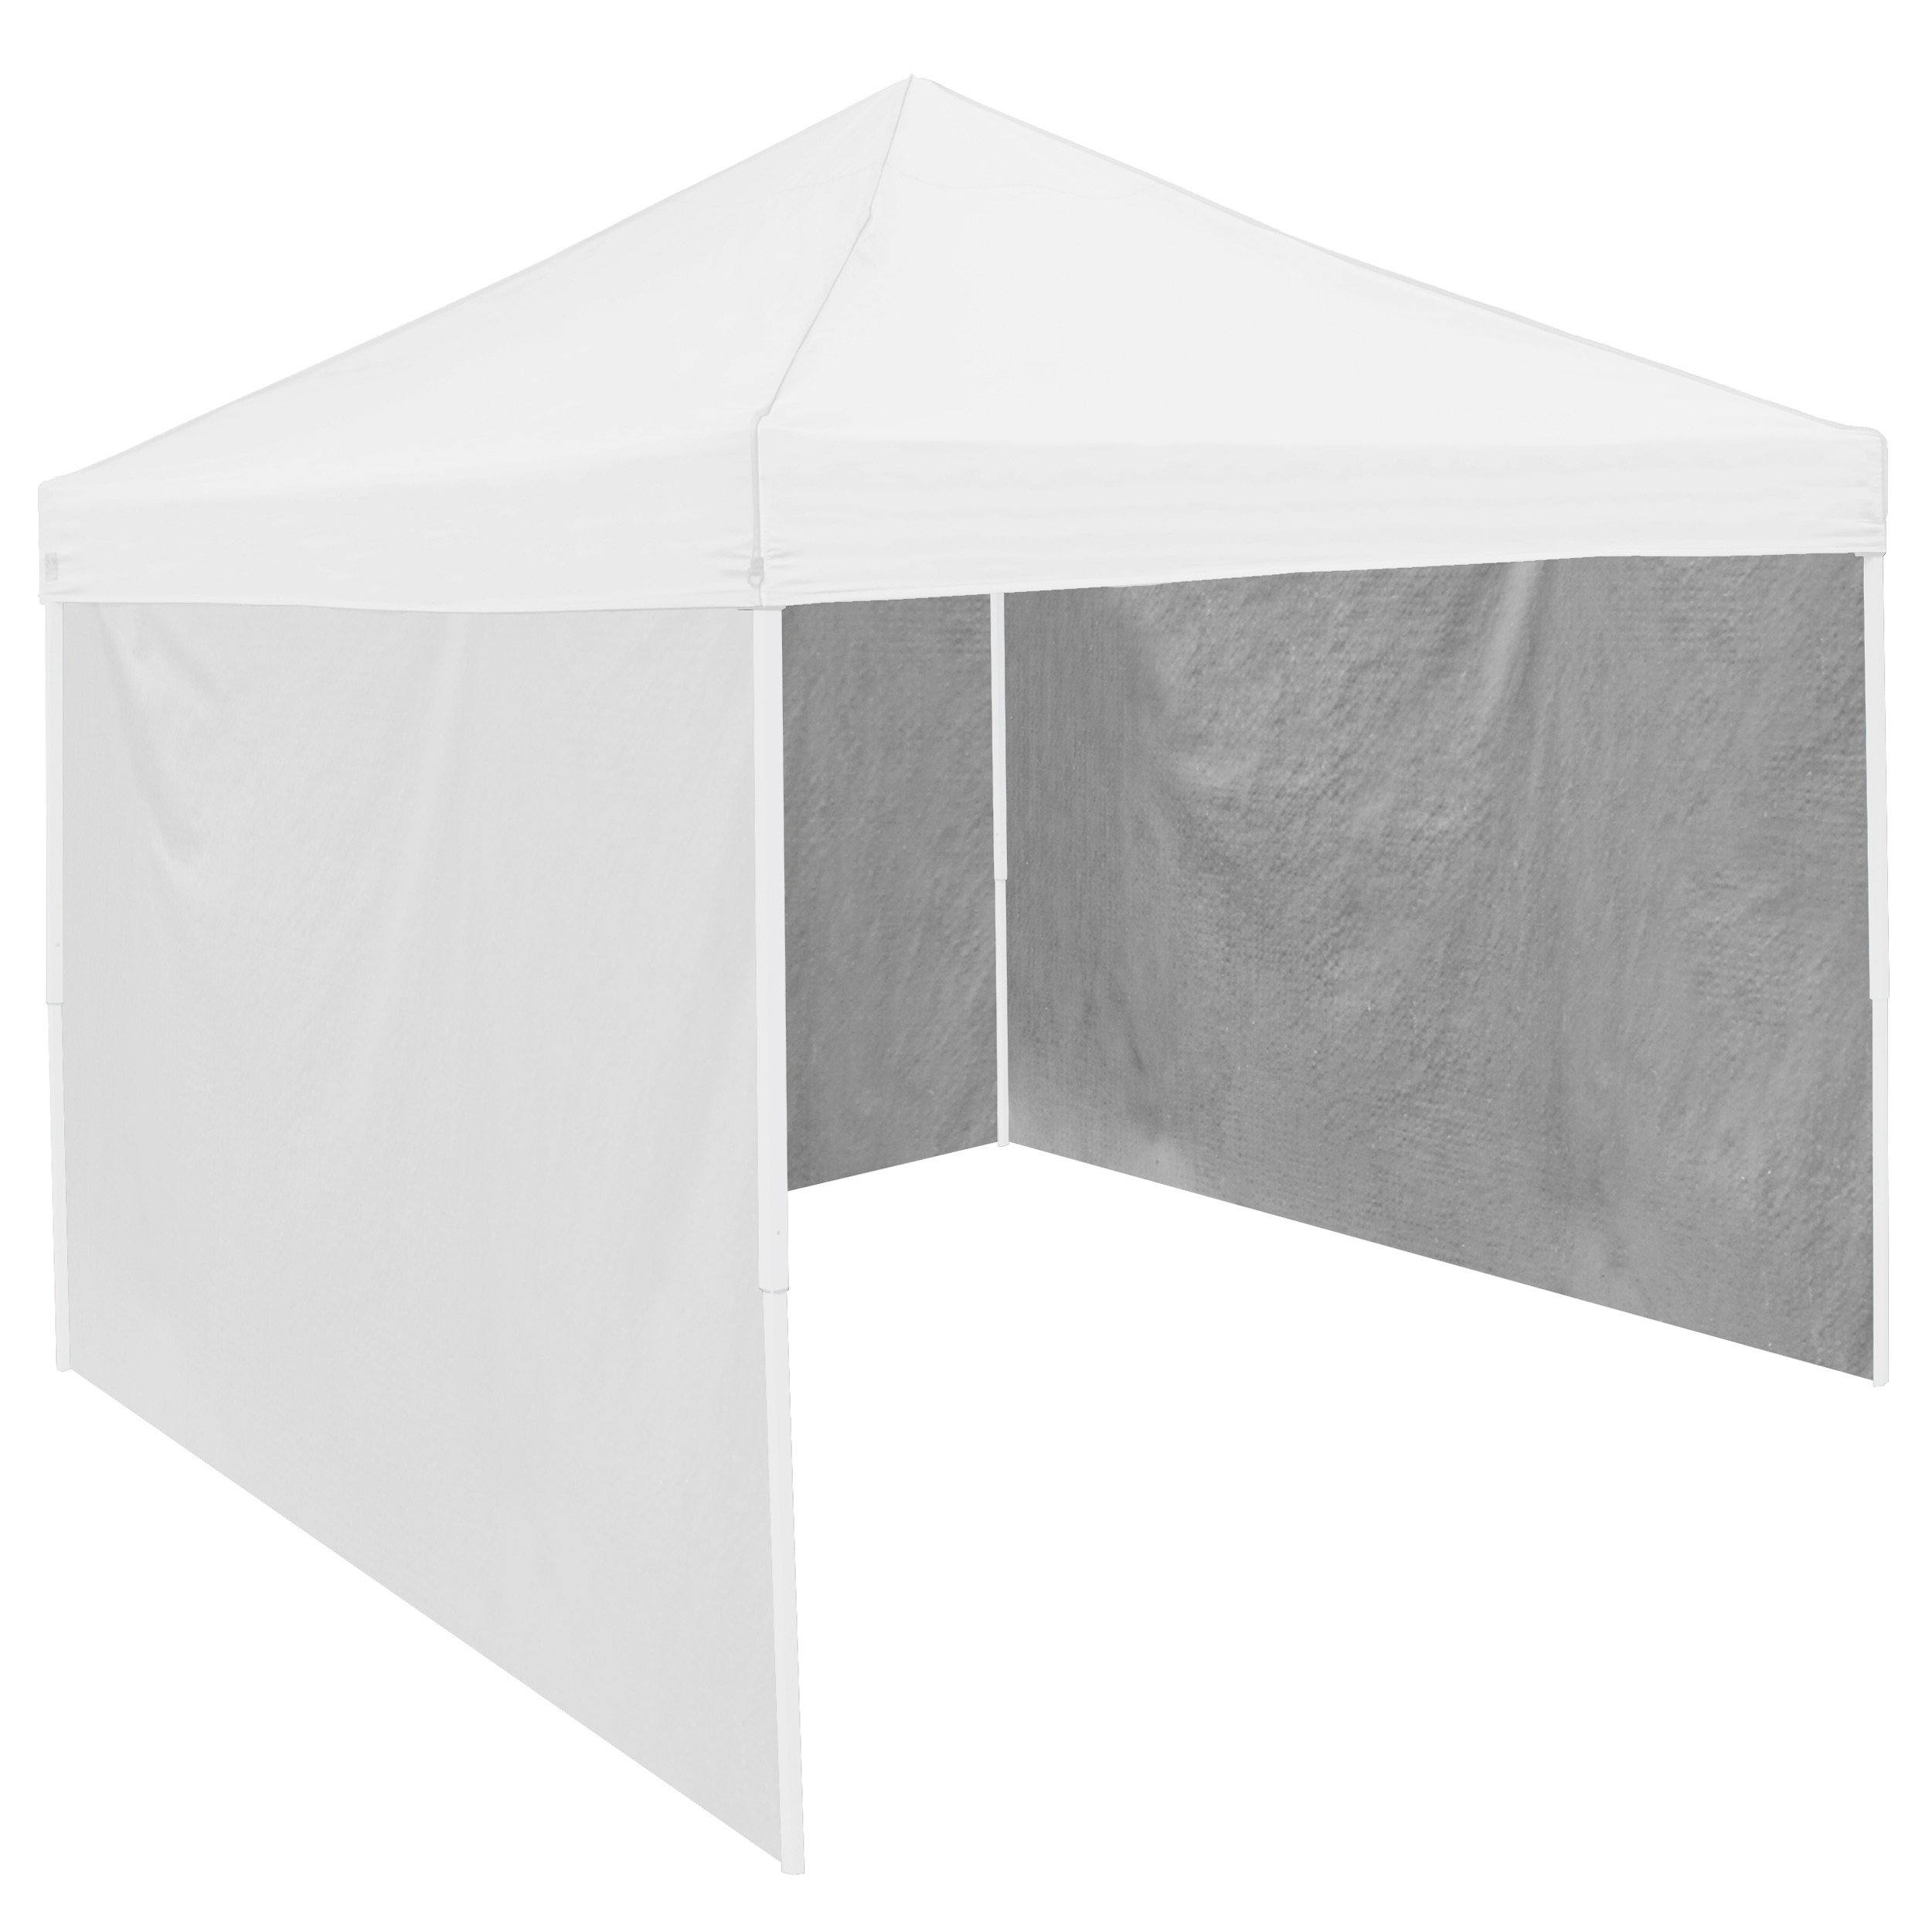 NCAA Adult Side Panel, 9 x 6', White by Logo Brands